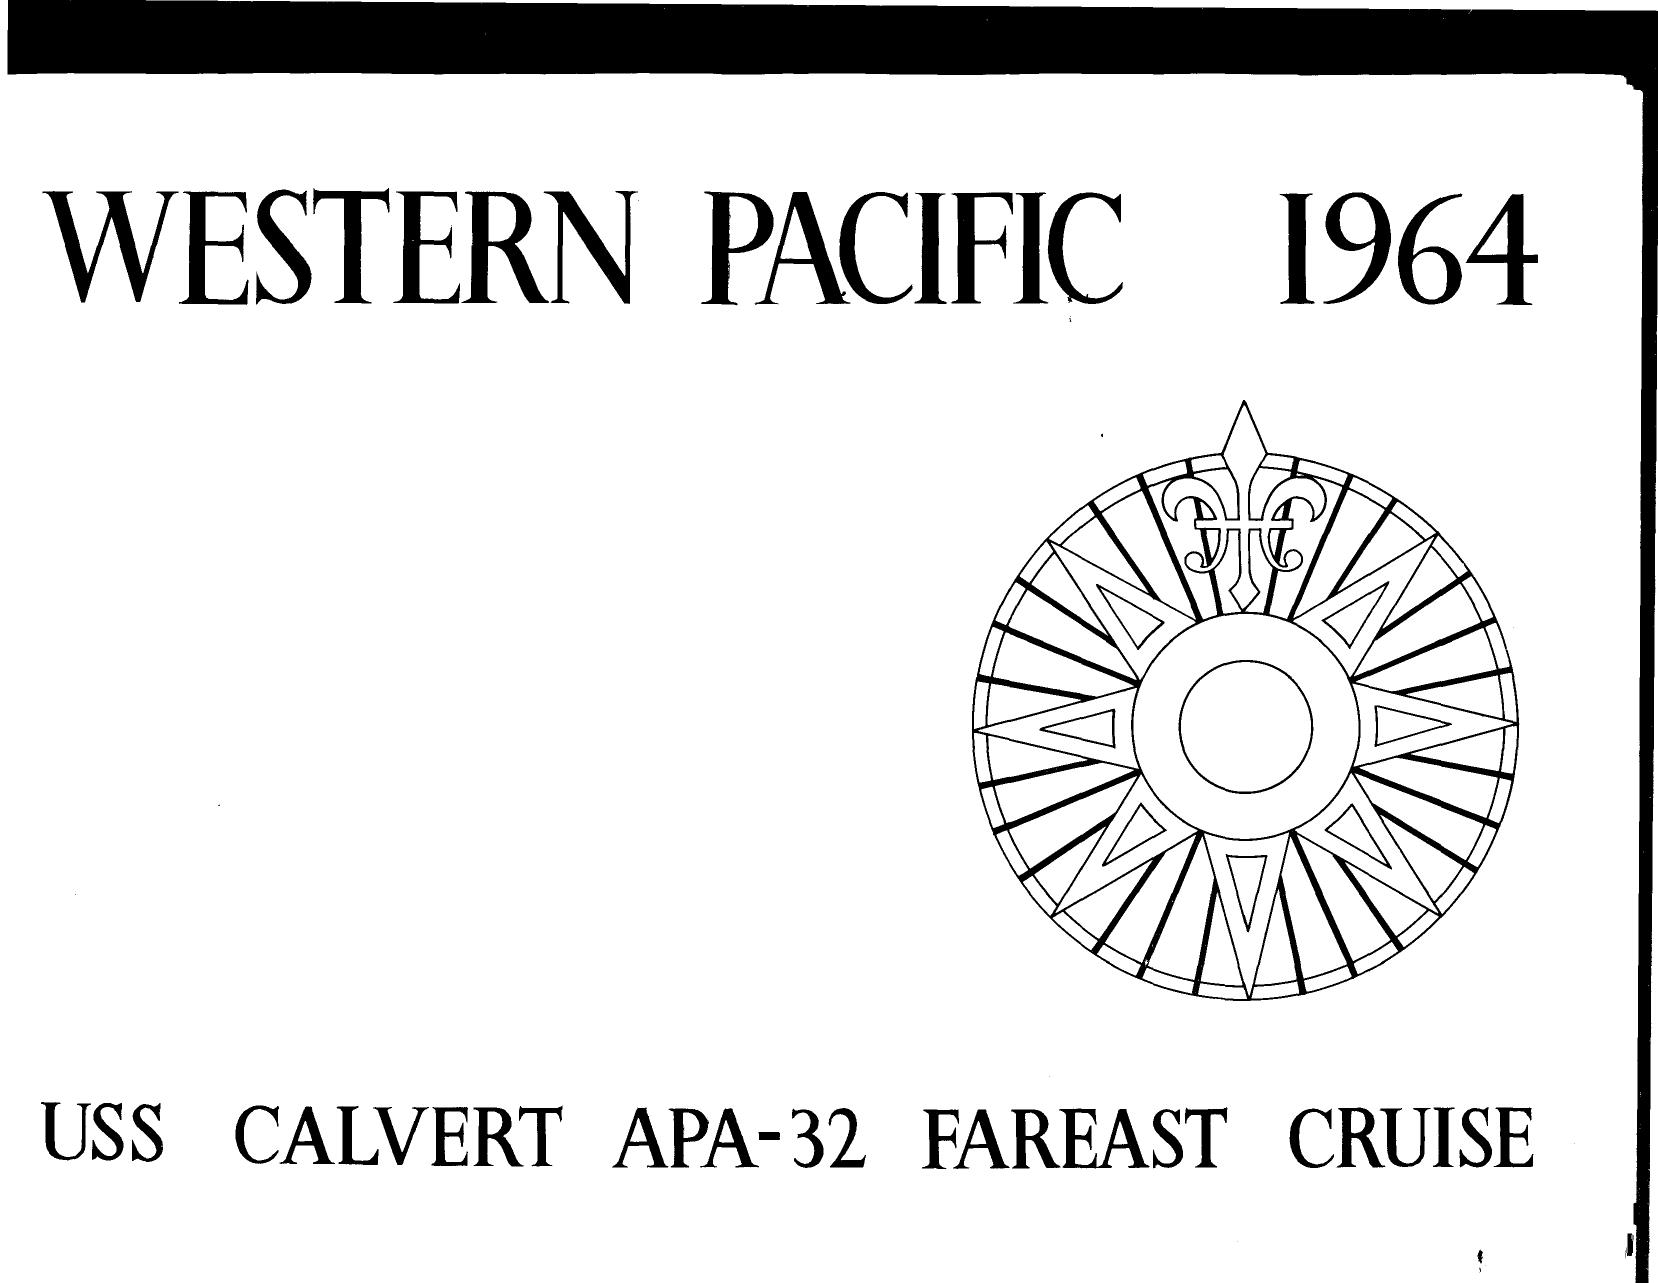 Uss Calvert S West Pacific Cruise Book